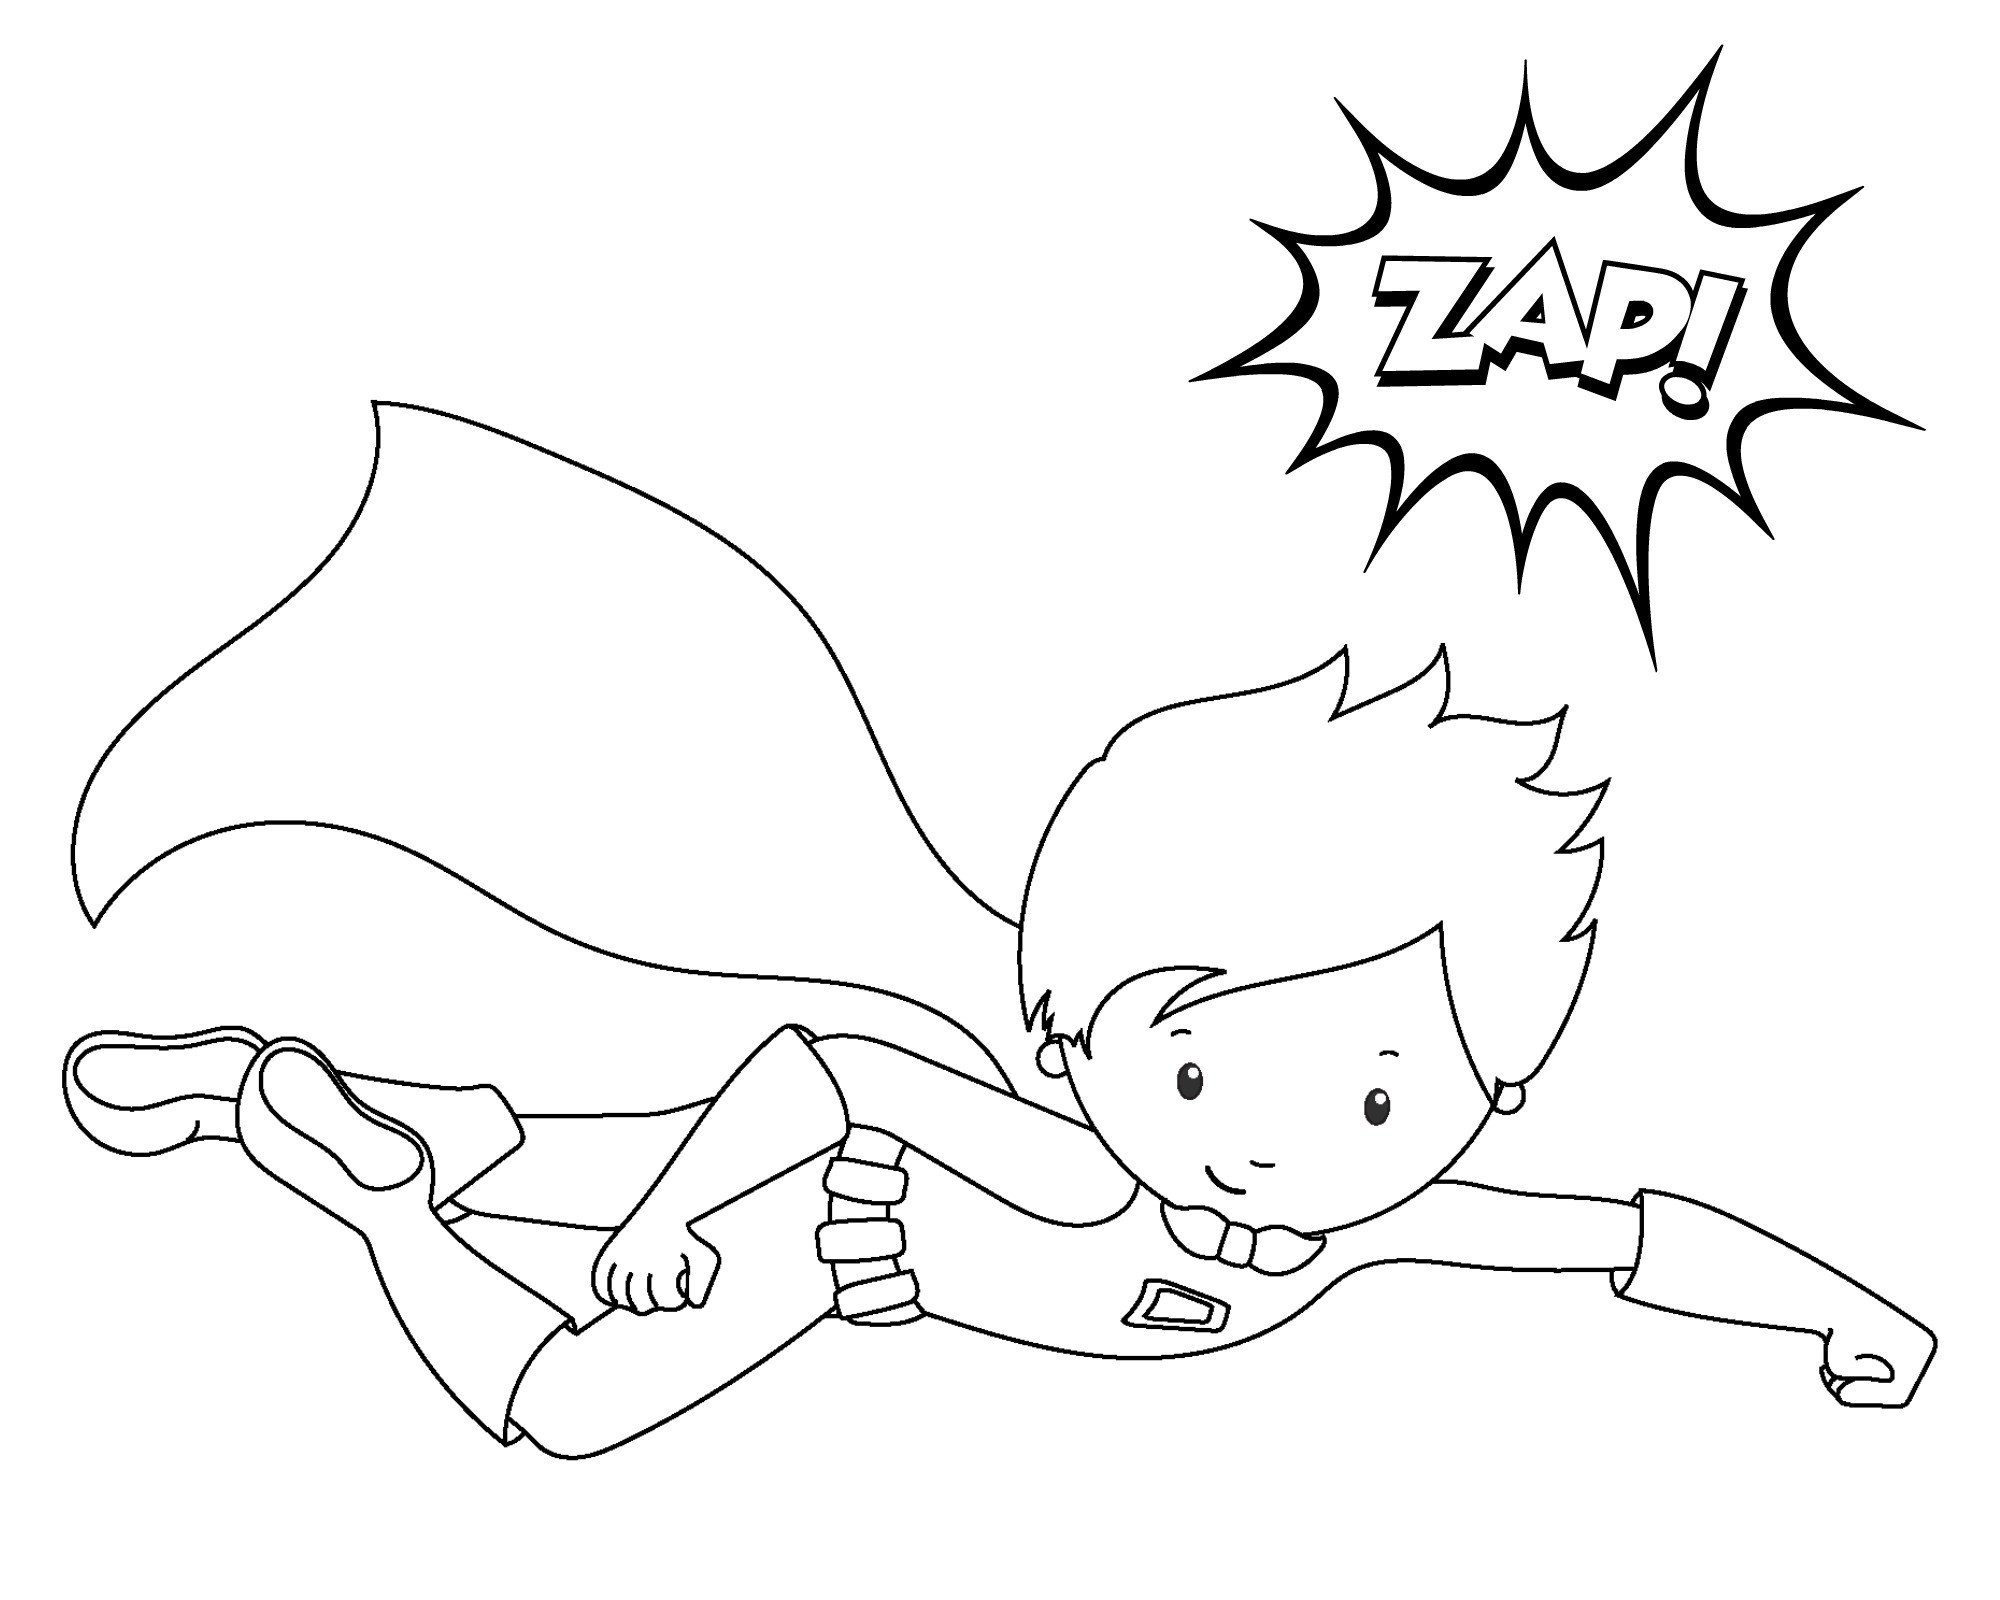 Super Heroes Coloring Page Free Printable Superhero Coloring Sheets for Kids Crazy